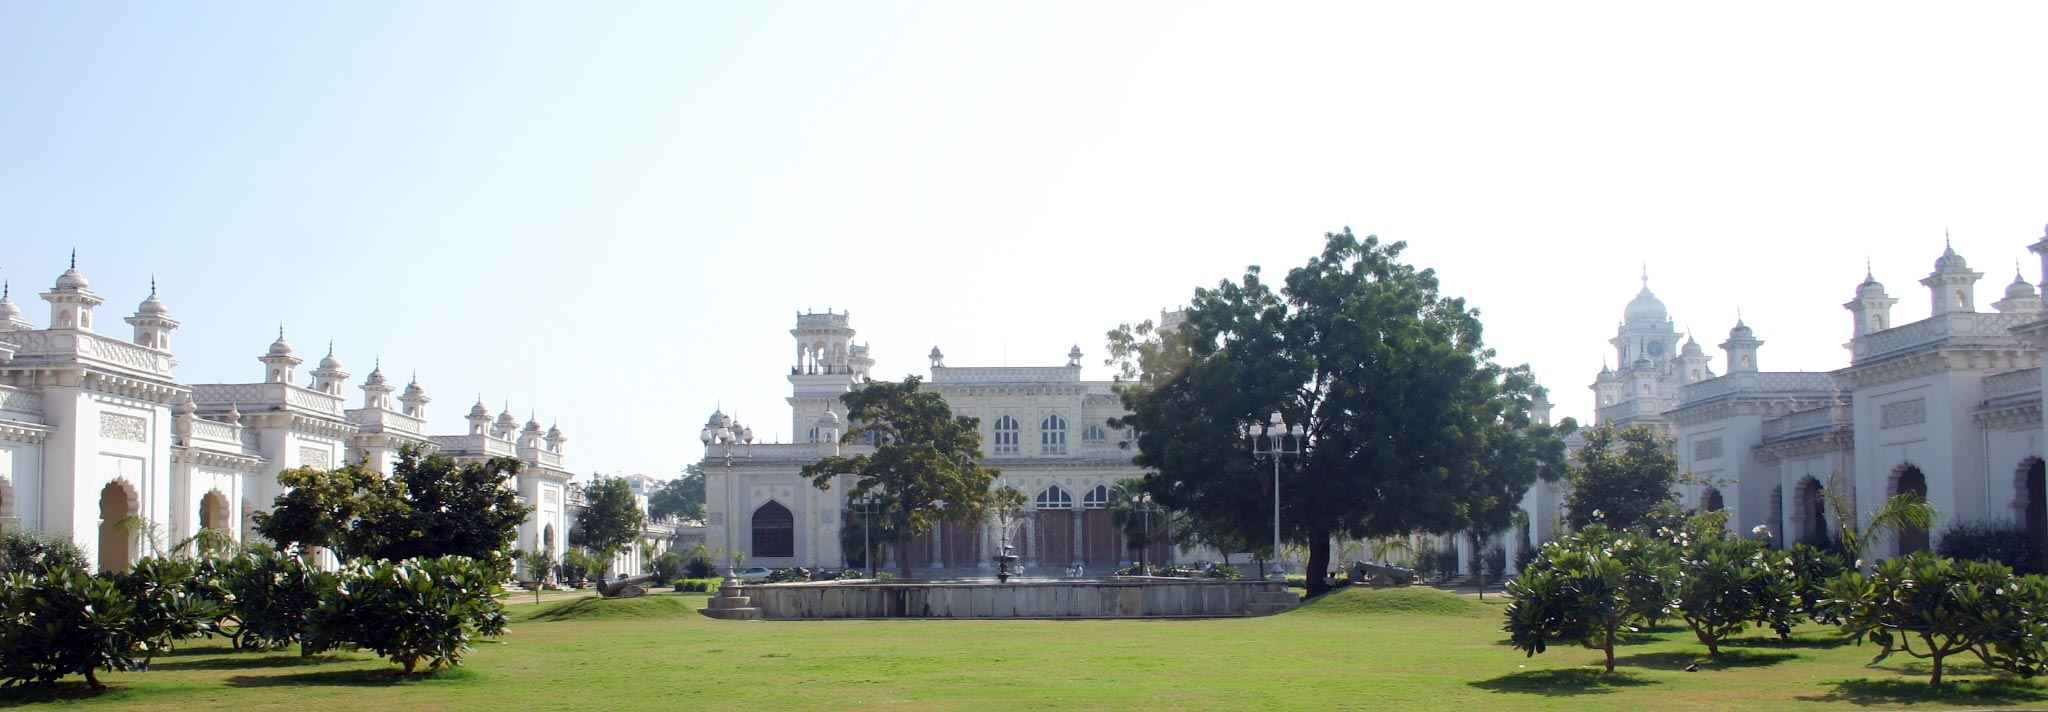 Chow Mohalla Palace Entrance panaroma view